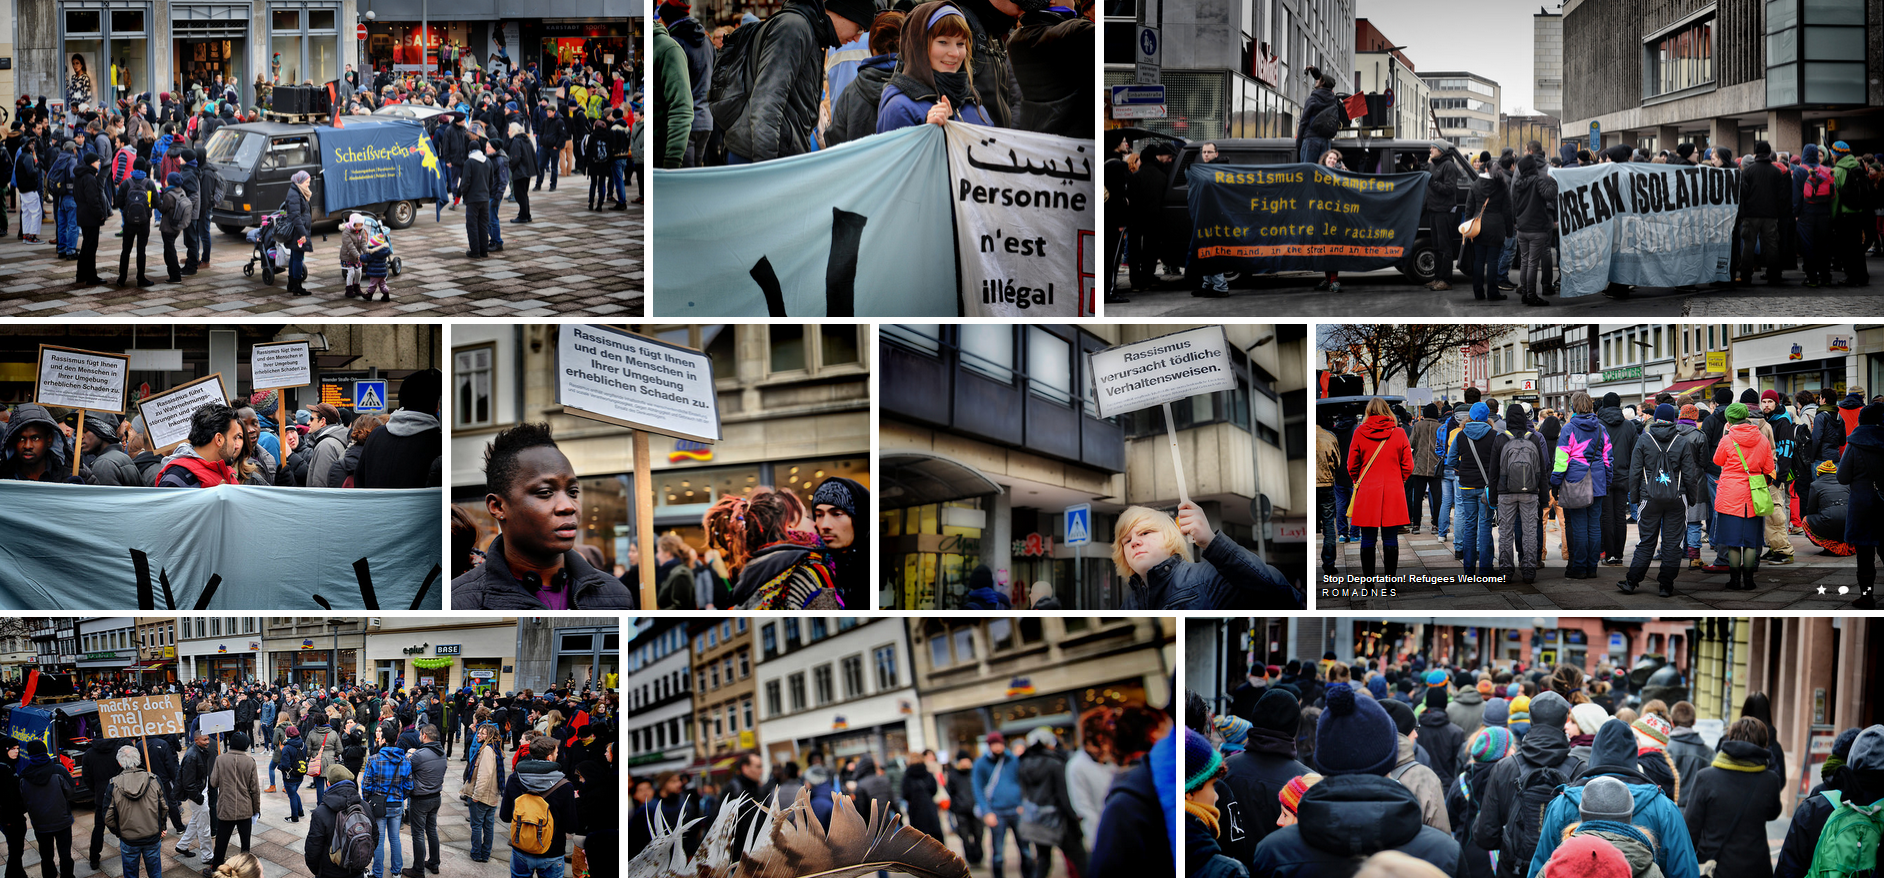 Refugees Welcome!!!Demo Göttingen 07.02.2015 – ein Album auf Flickr